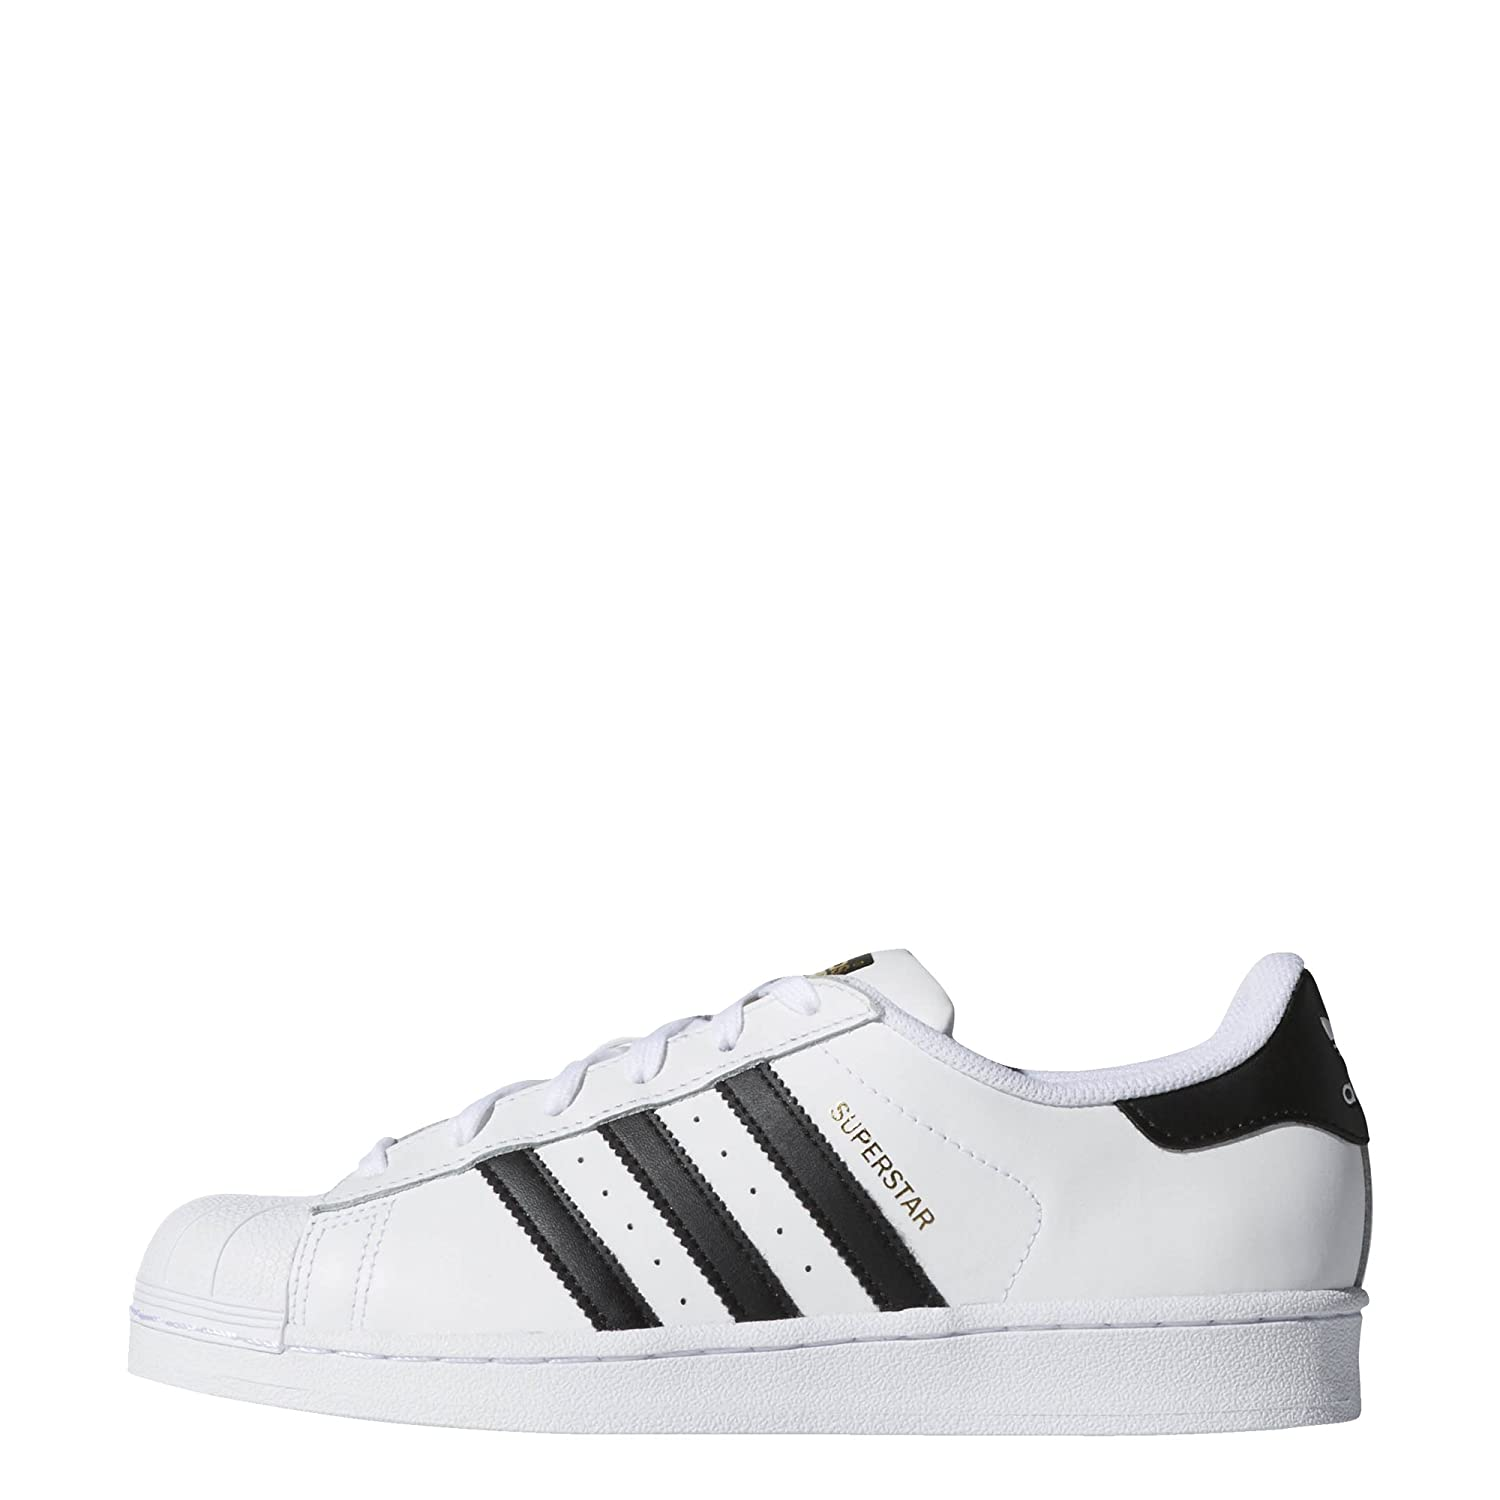 adidas superstar n 21